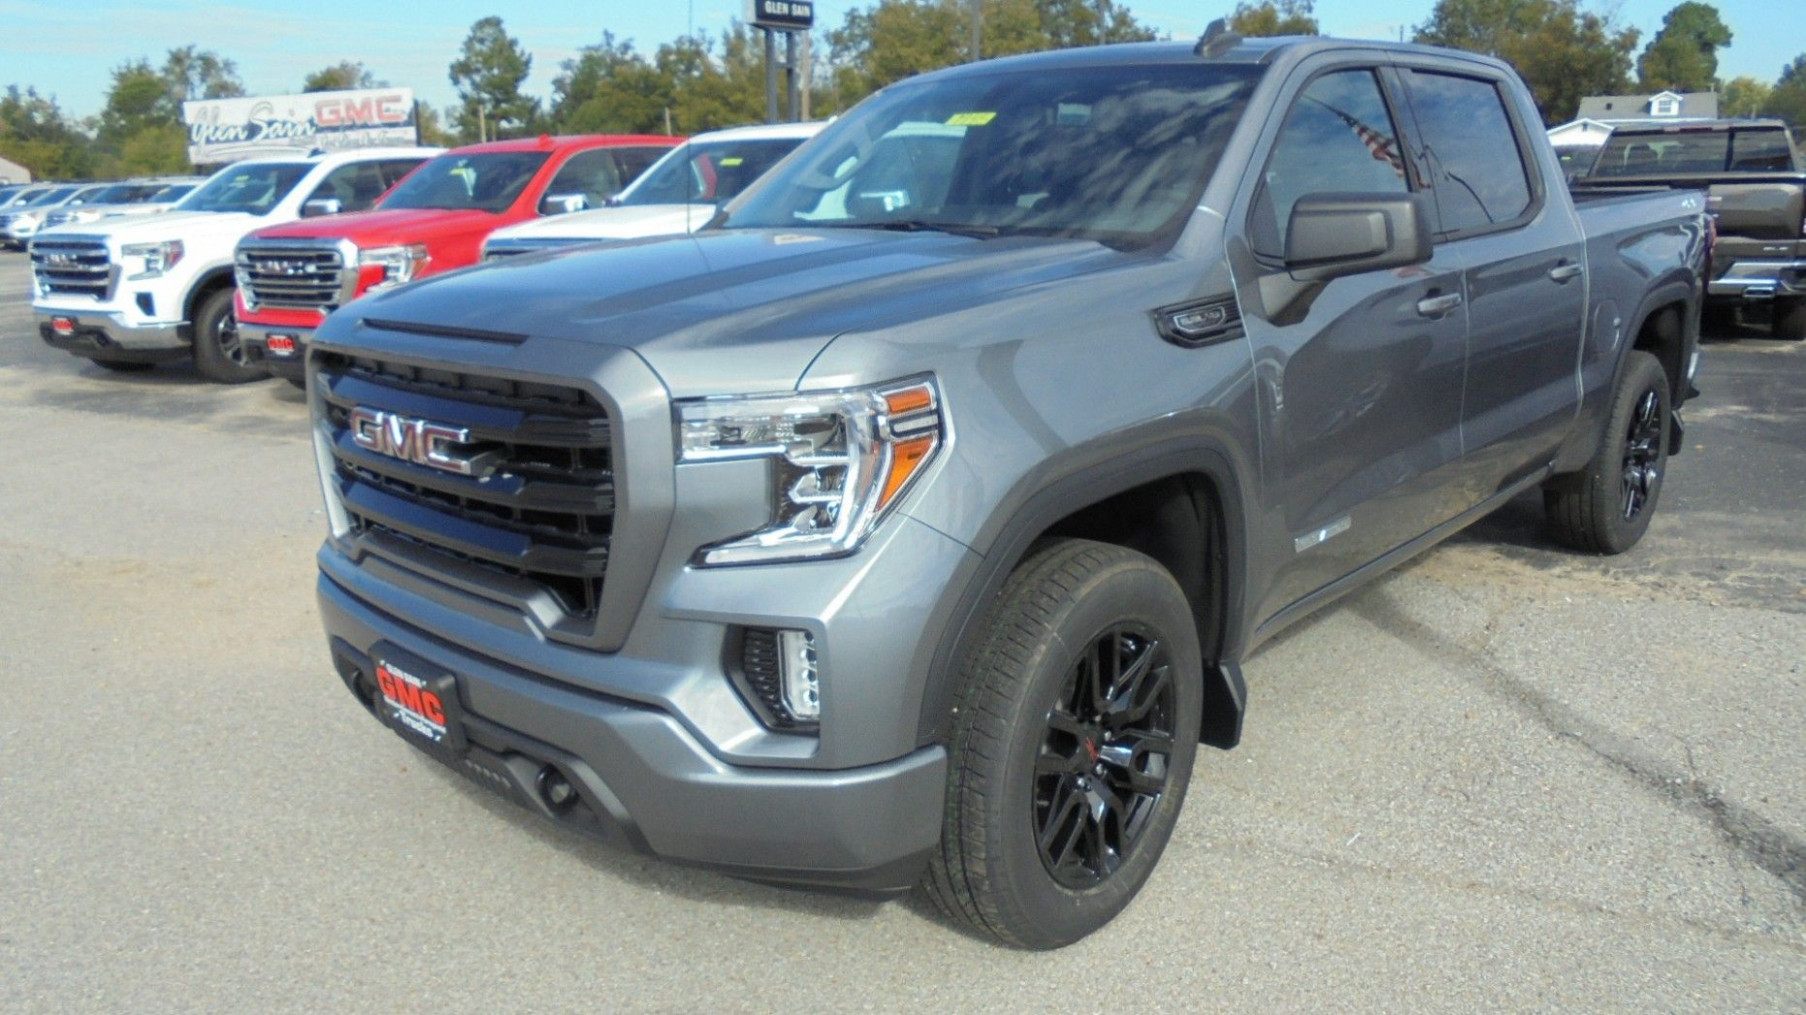 9 Gmc Elevation X9 Performance And New | Gmc, Performance - 2020 gmc x31